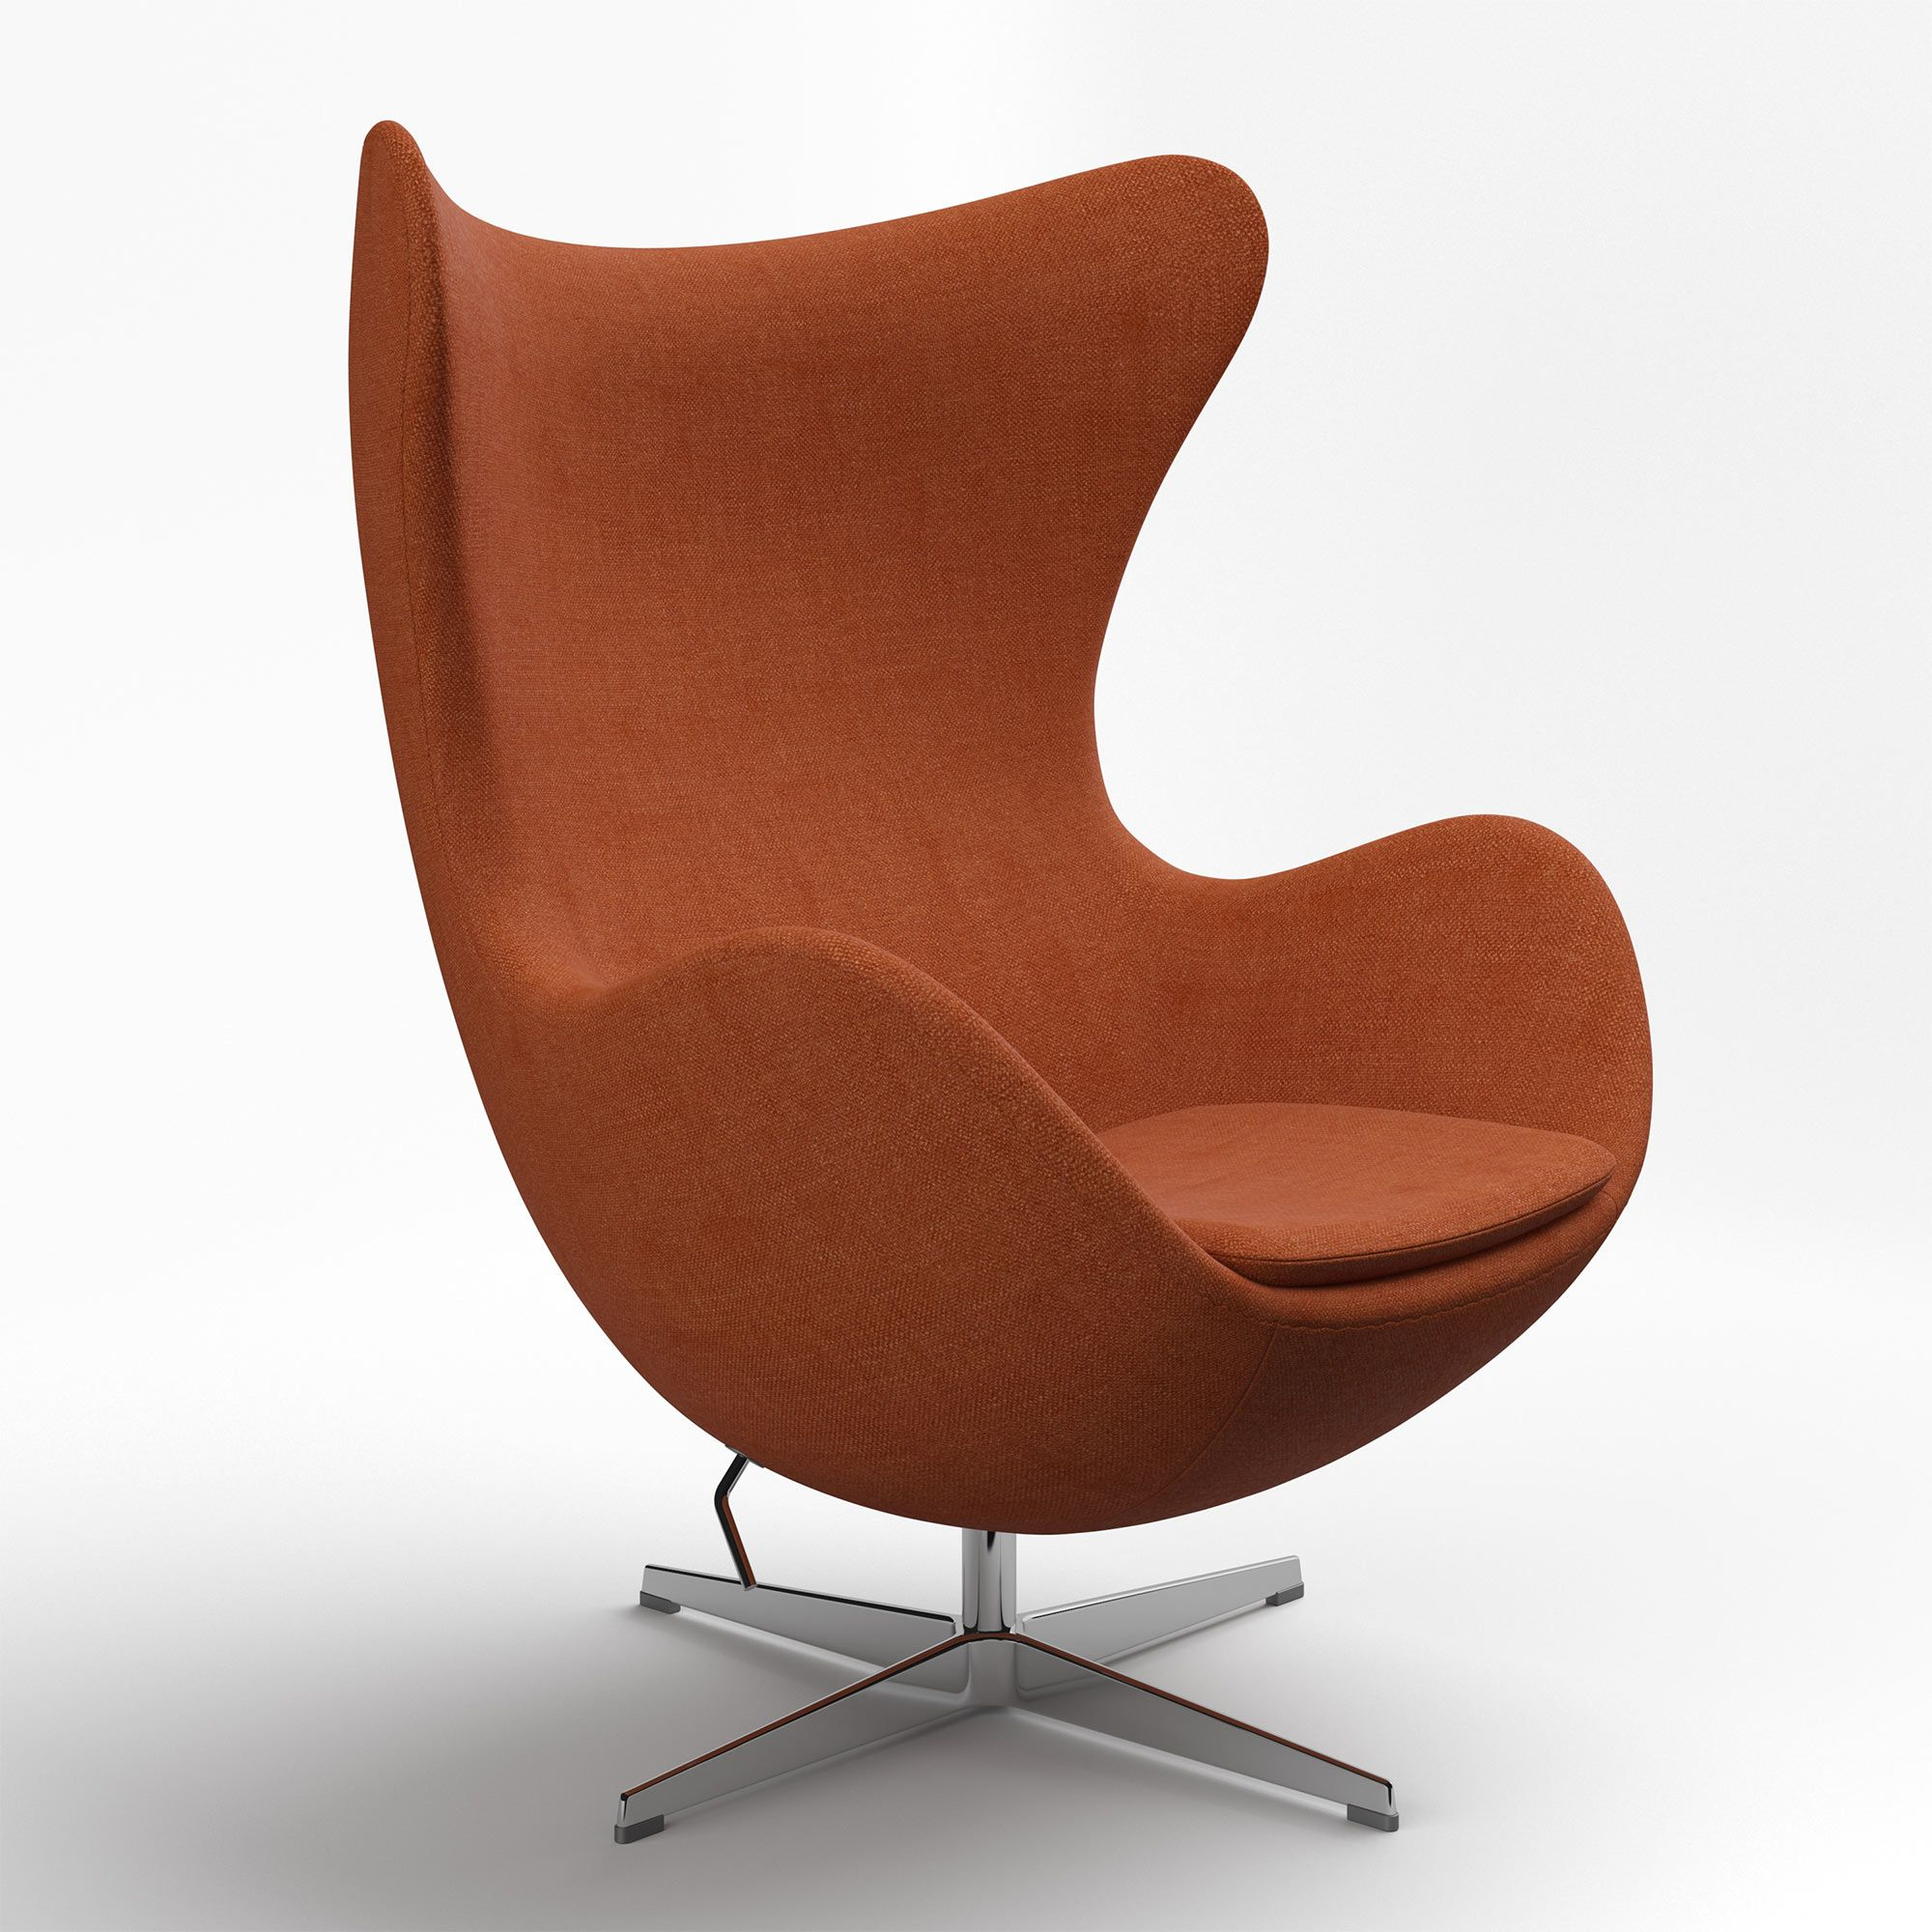 Jacobsen Egg Chair (With images) Egg chair, Oversized